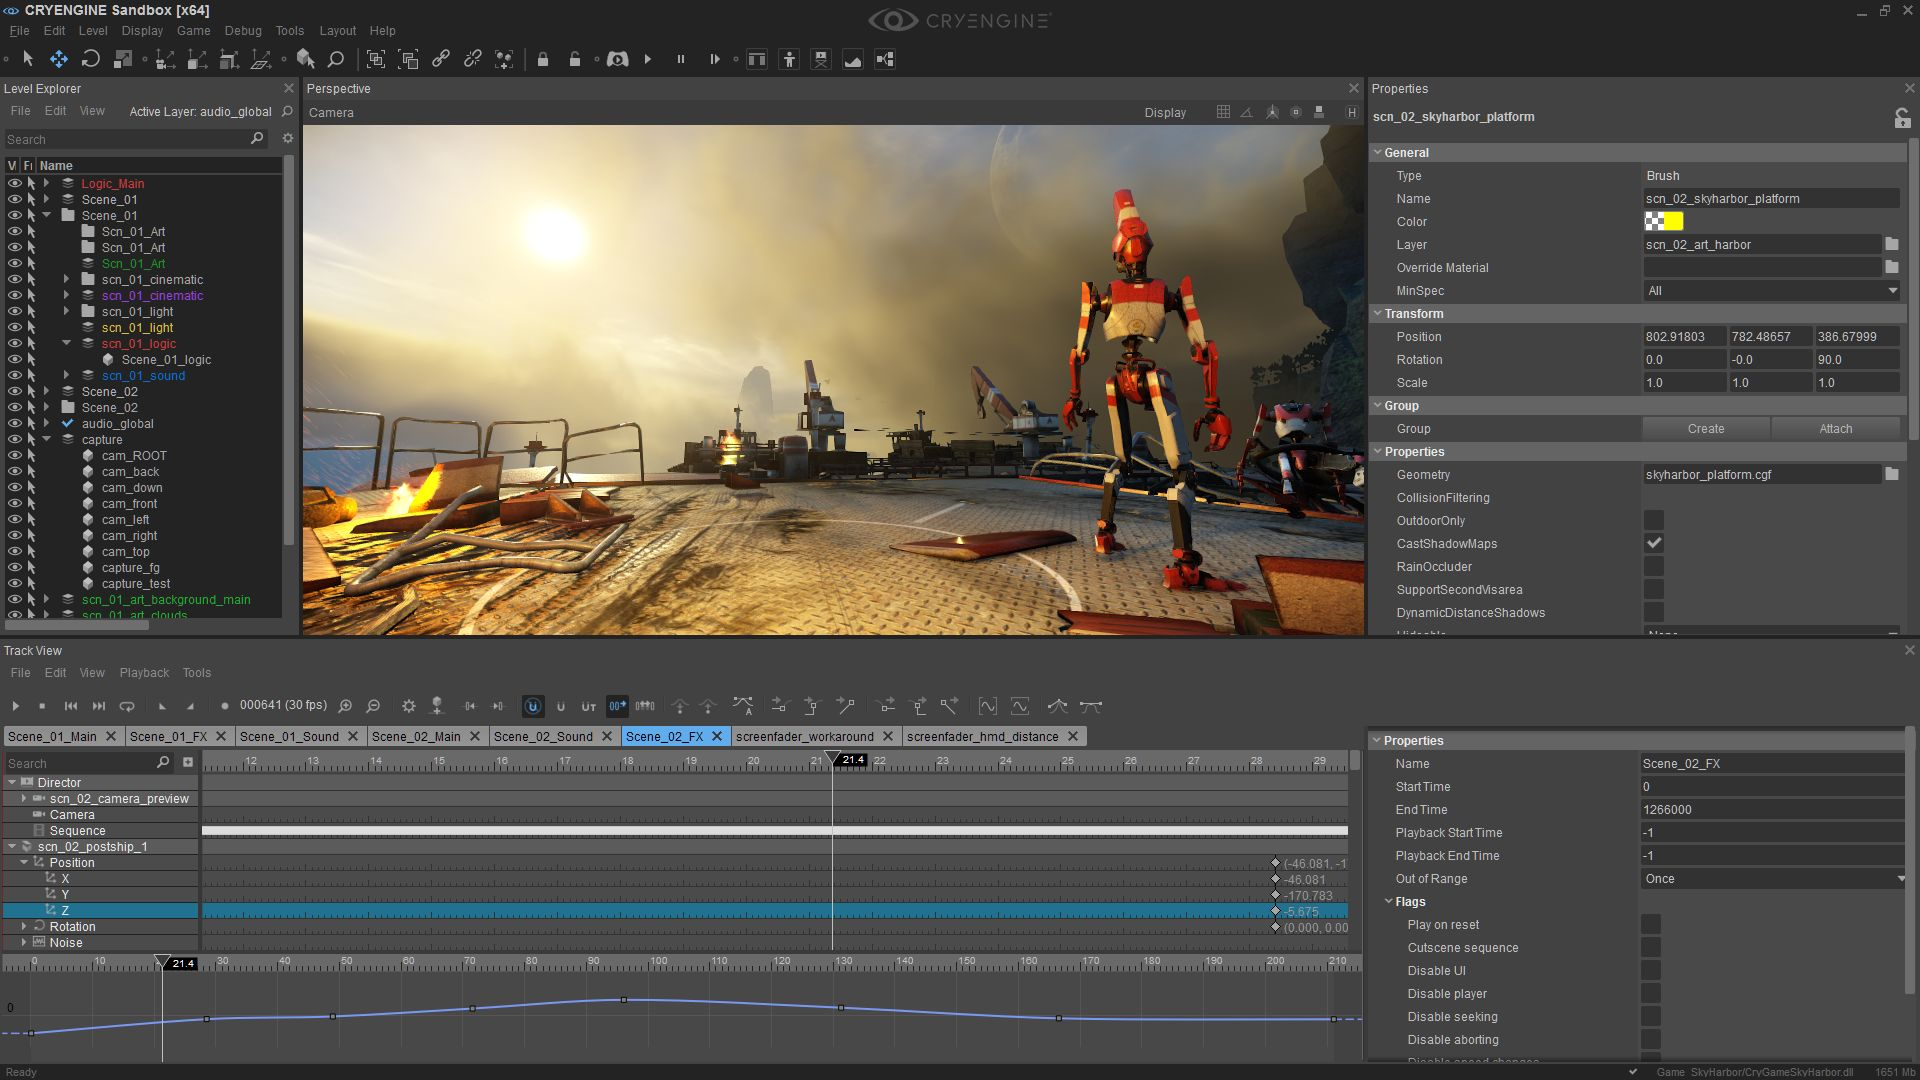 CryEngine Demo - Trackview Cinematic Editor